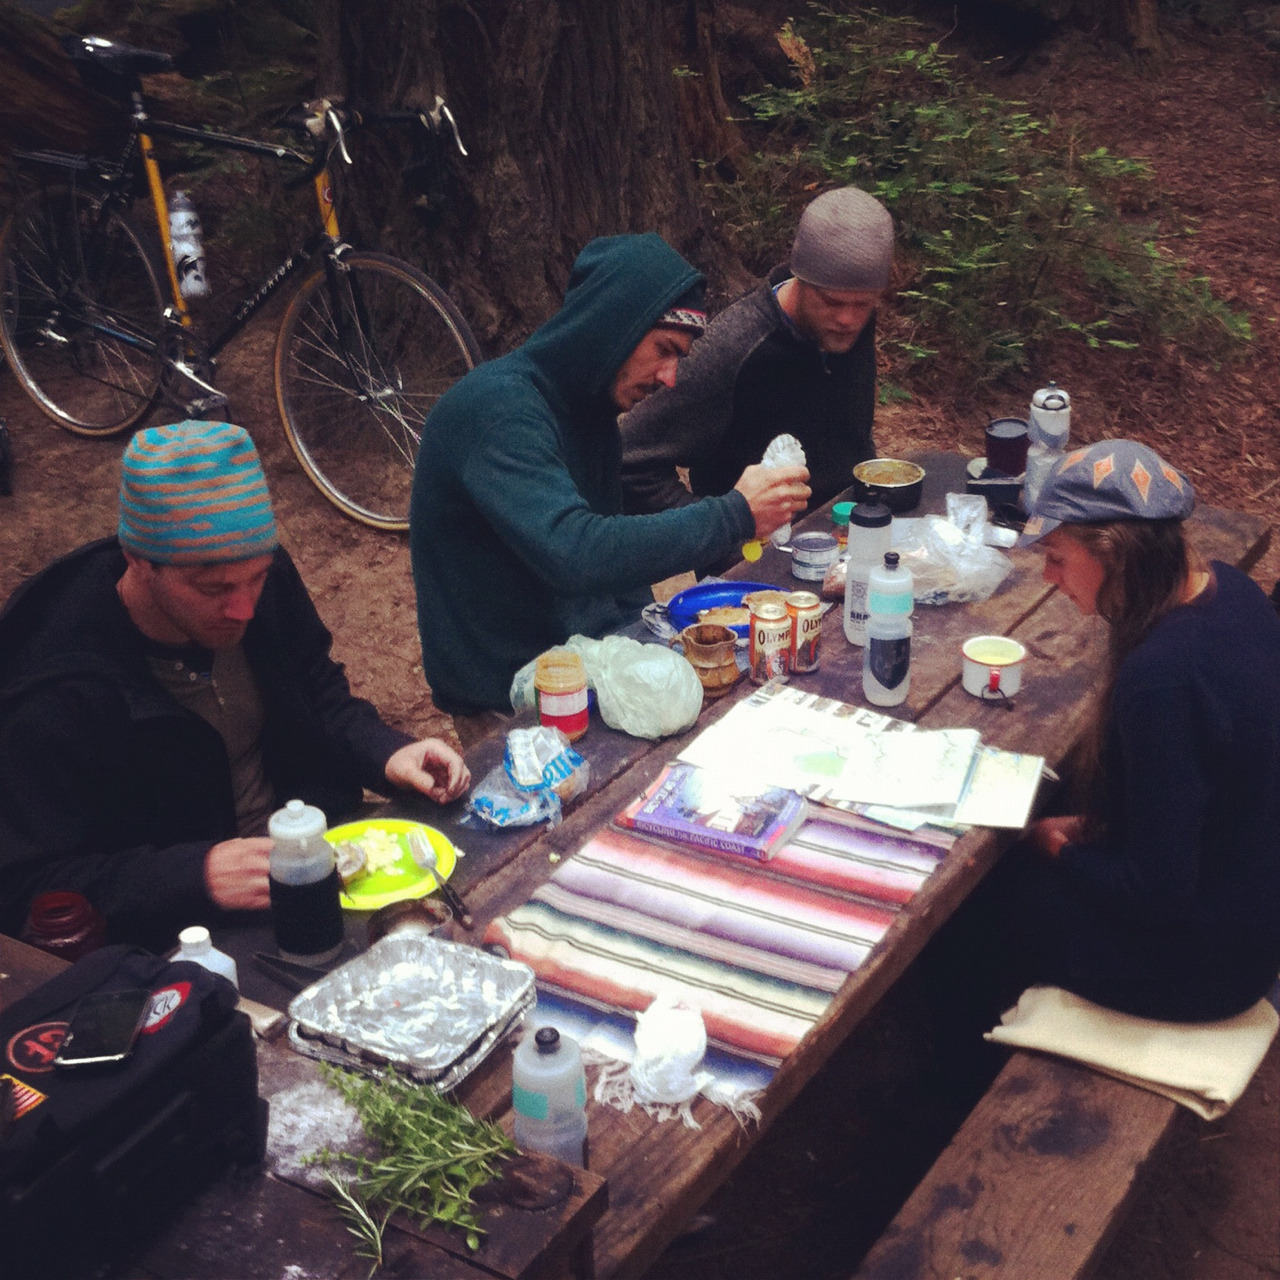 thegrreatescape:  The Hike and Bike camp was crowded with the best of folks